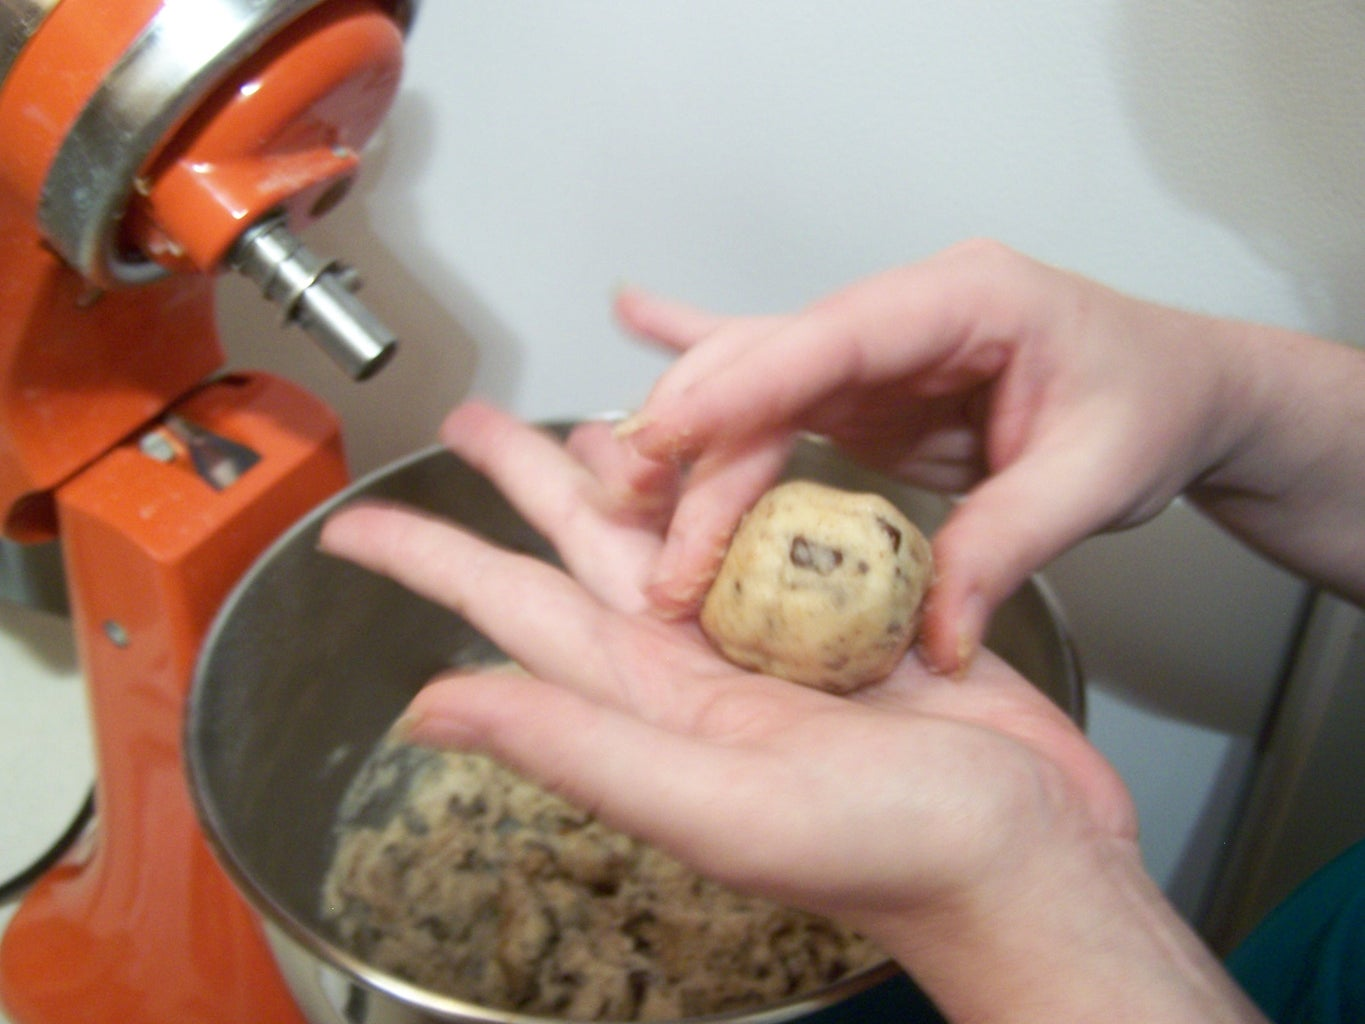 Forming the Cookies